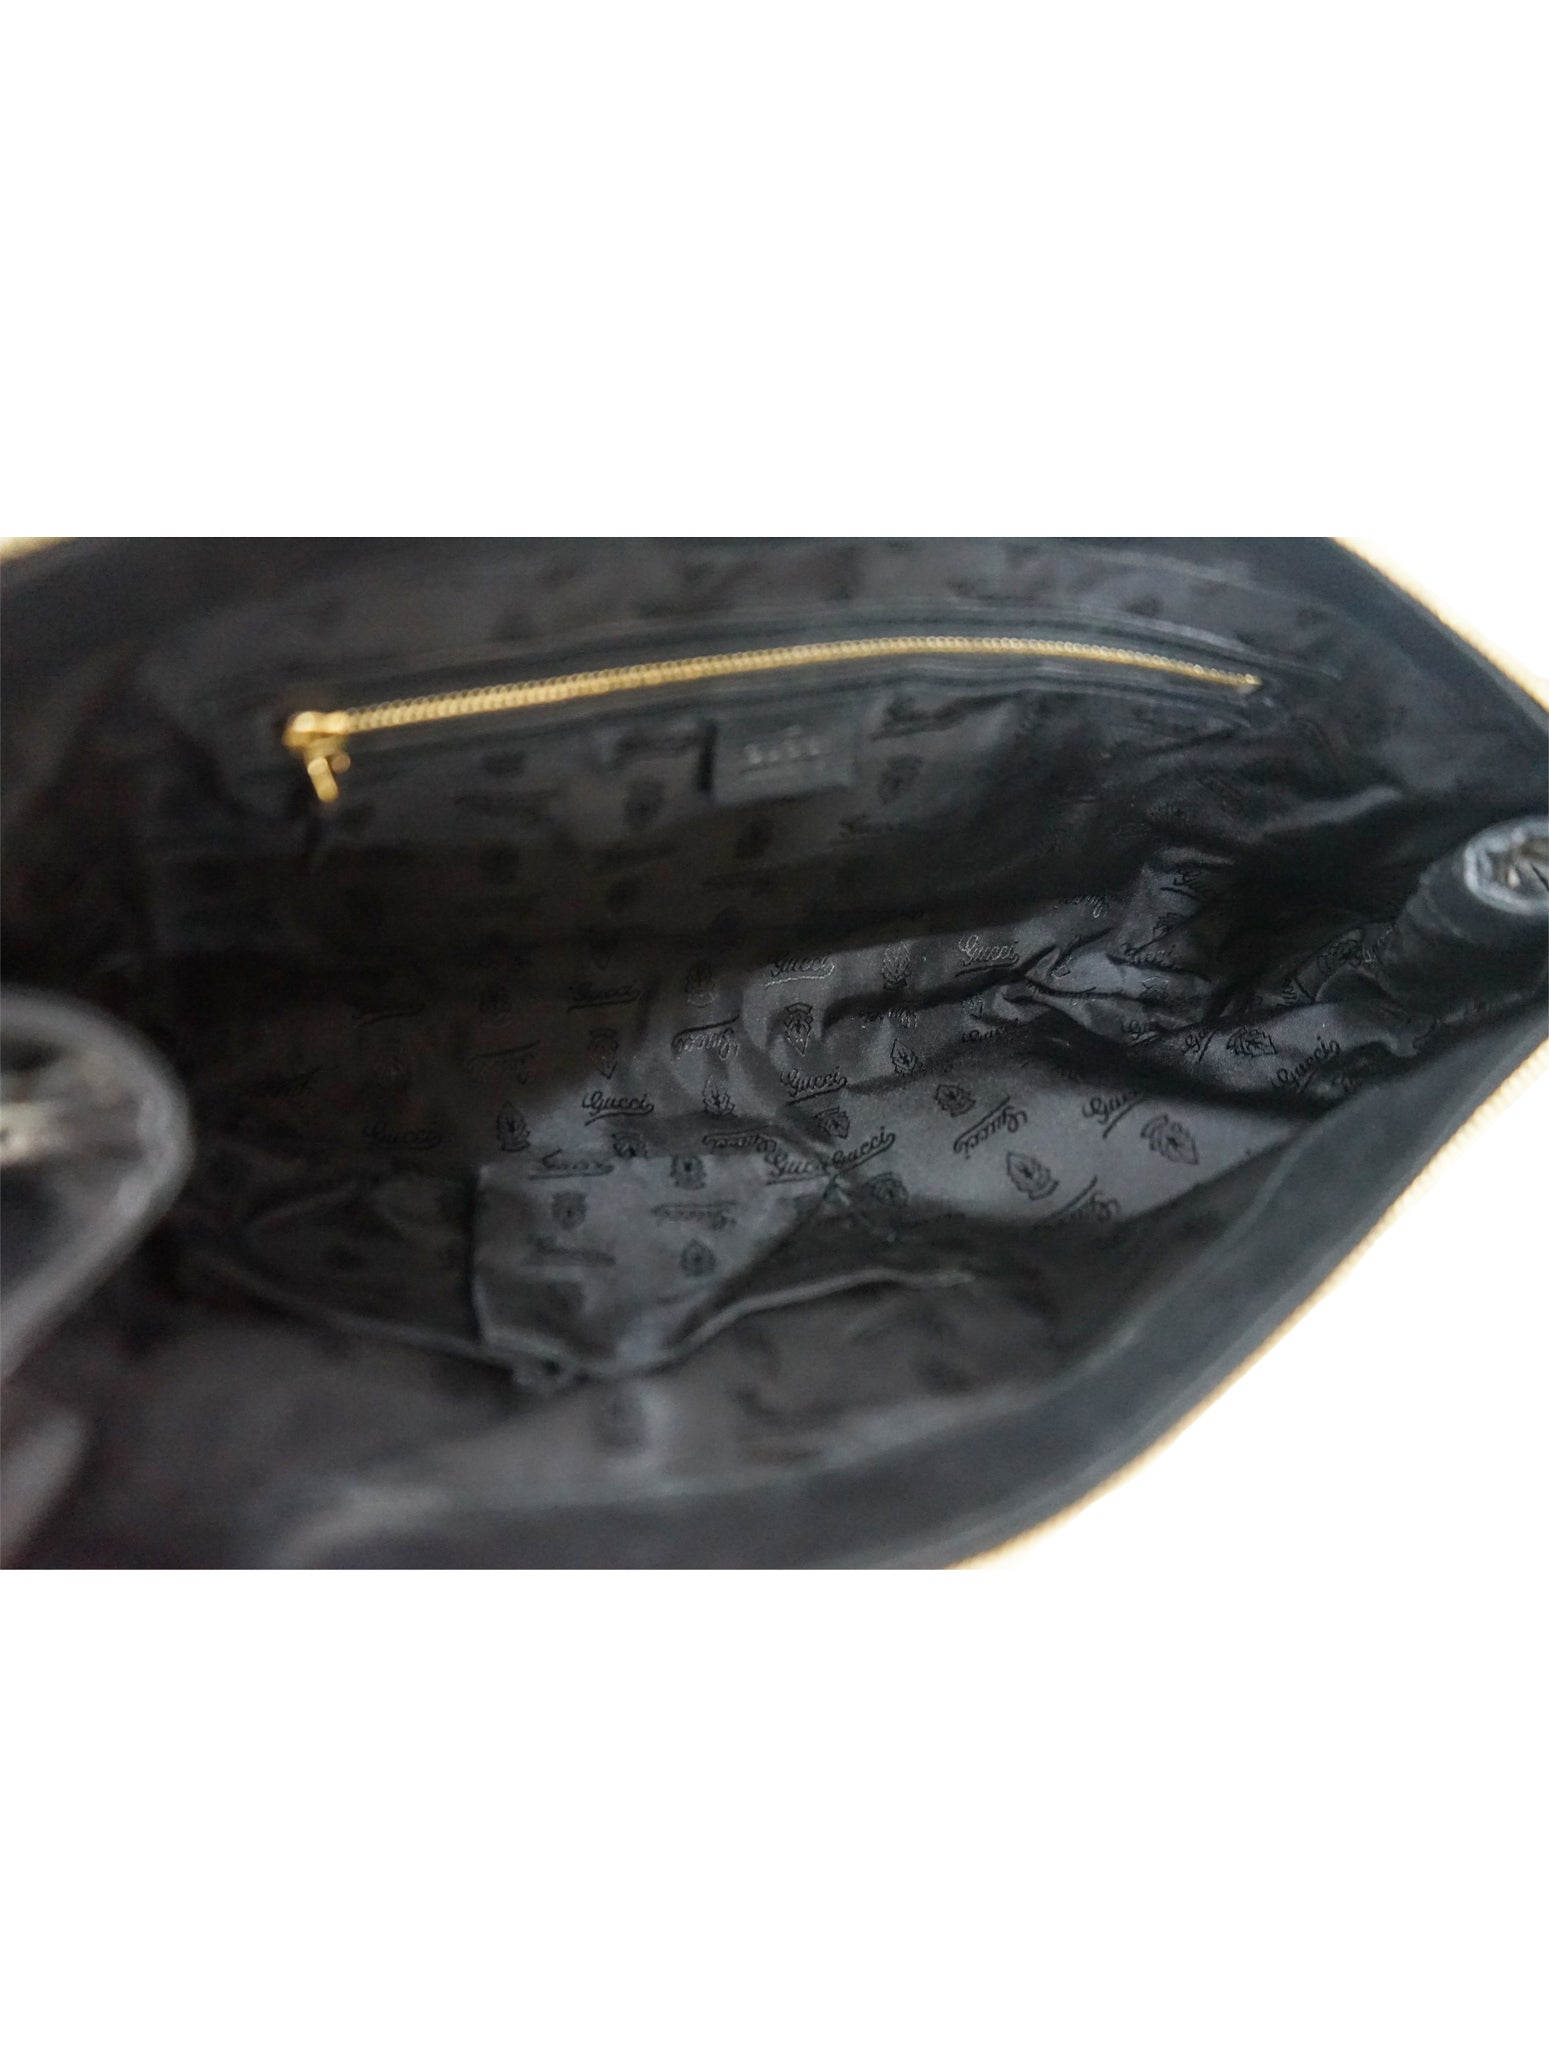 BLACK LEATHER HYSTERIA CLUTCH BAG